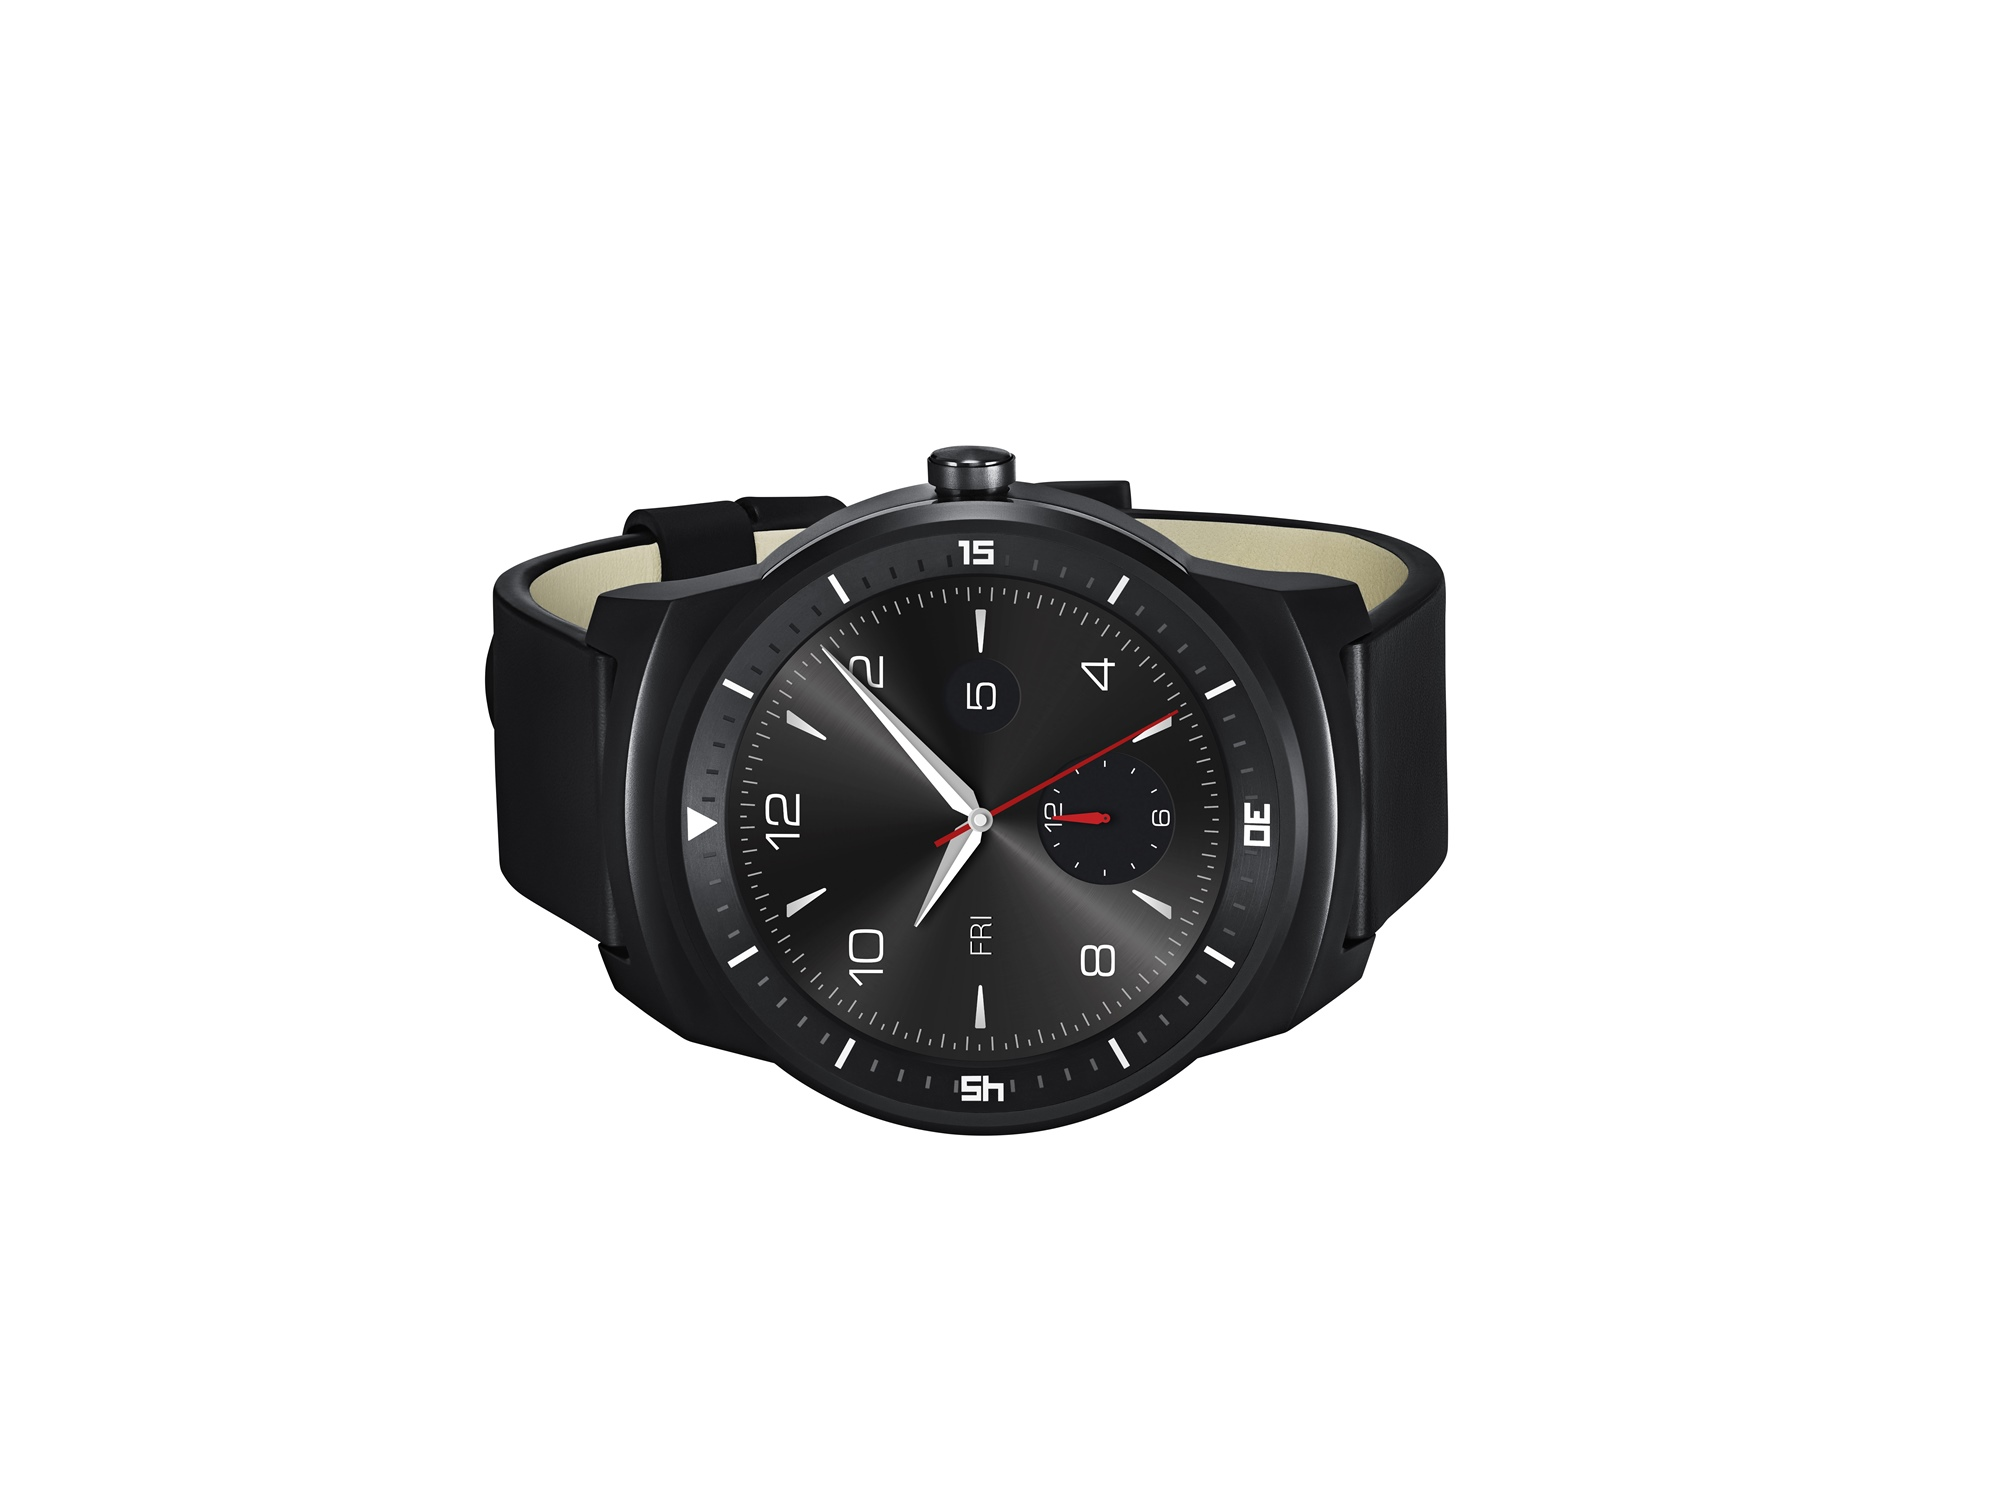 A front view of a LG G Watch R lying on its side.